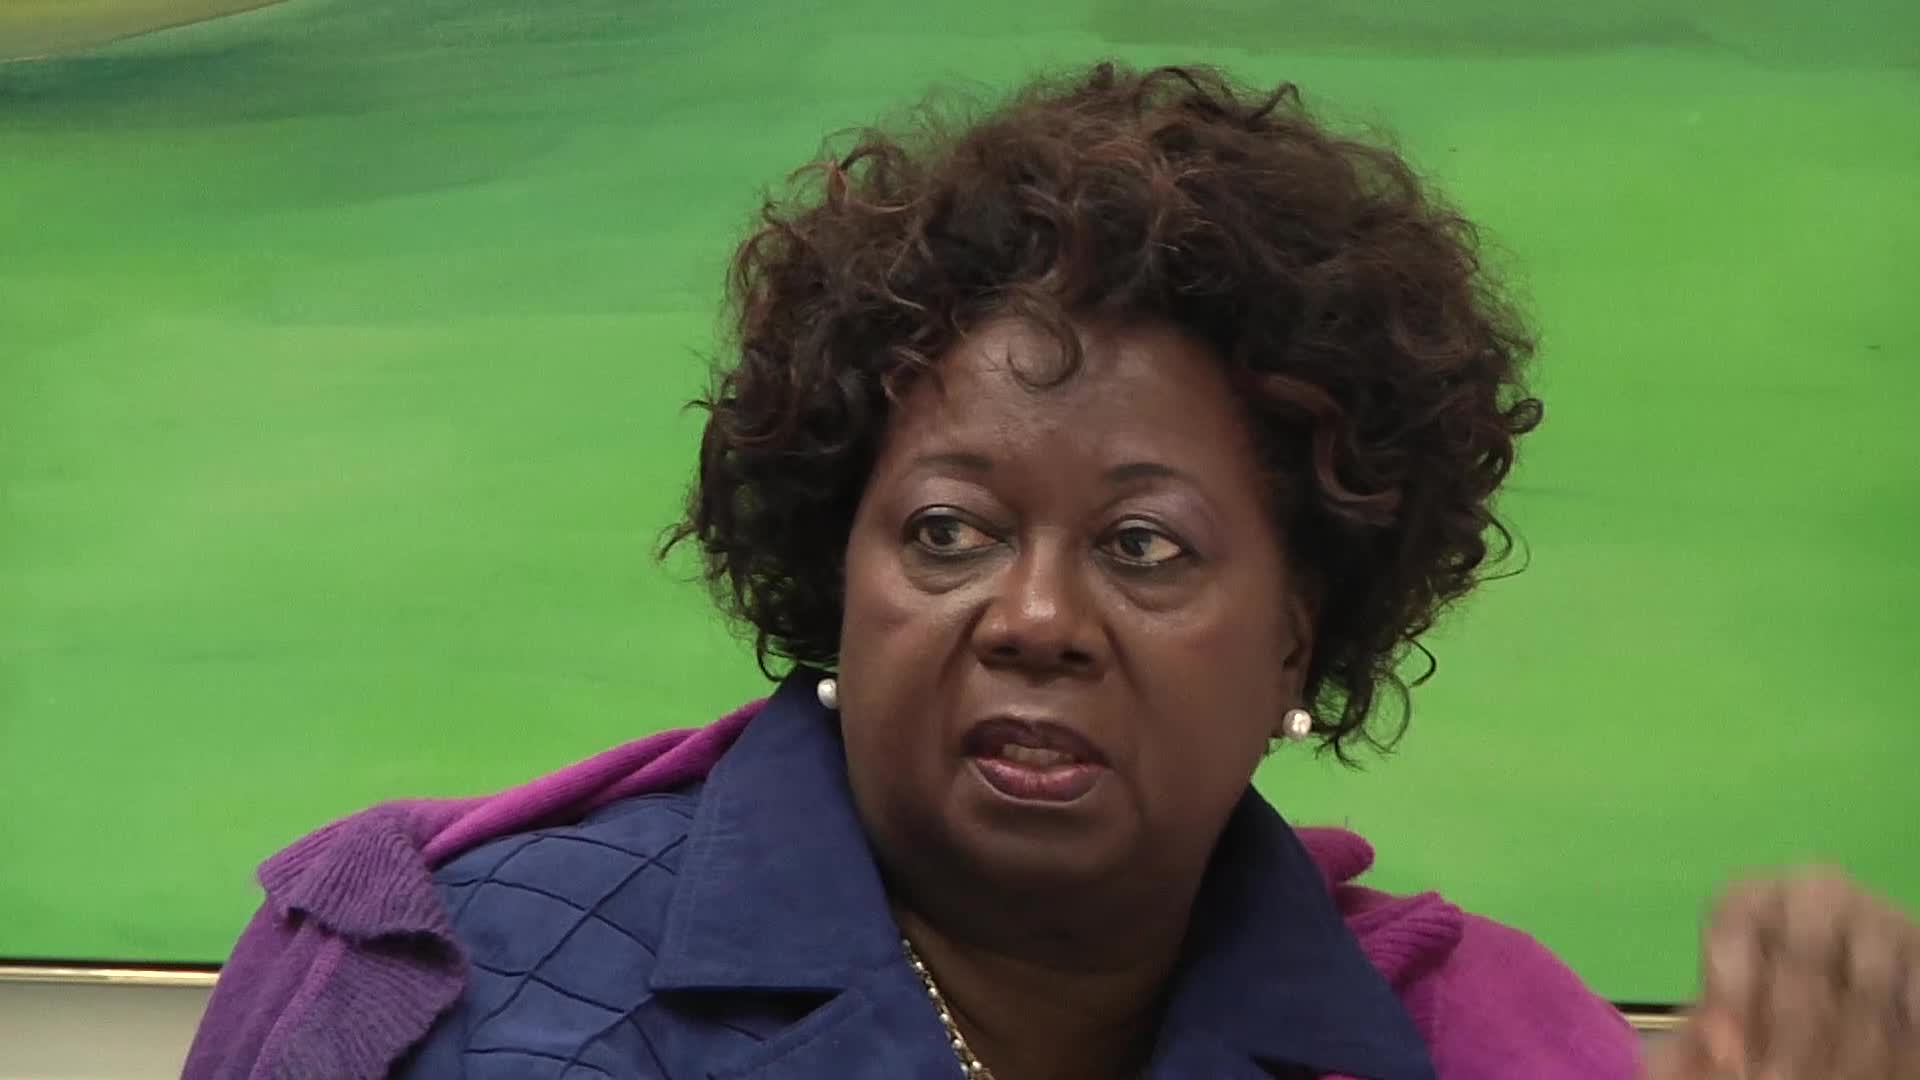 Jean Augustine interview: Boycott W5 program button